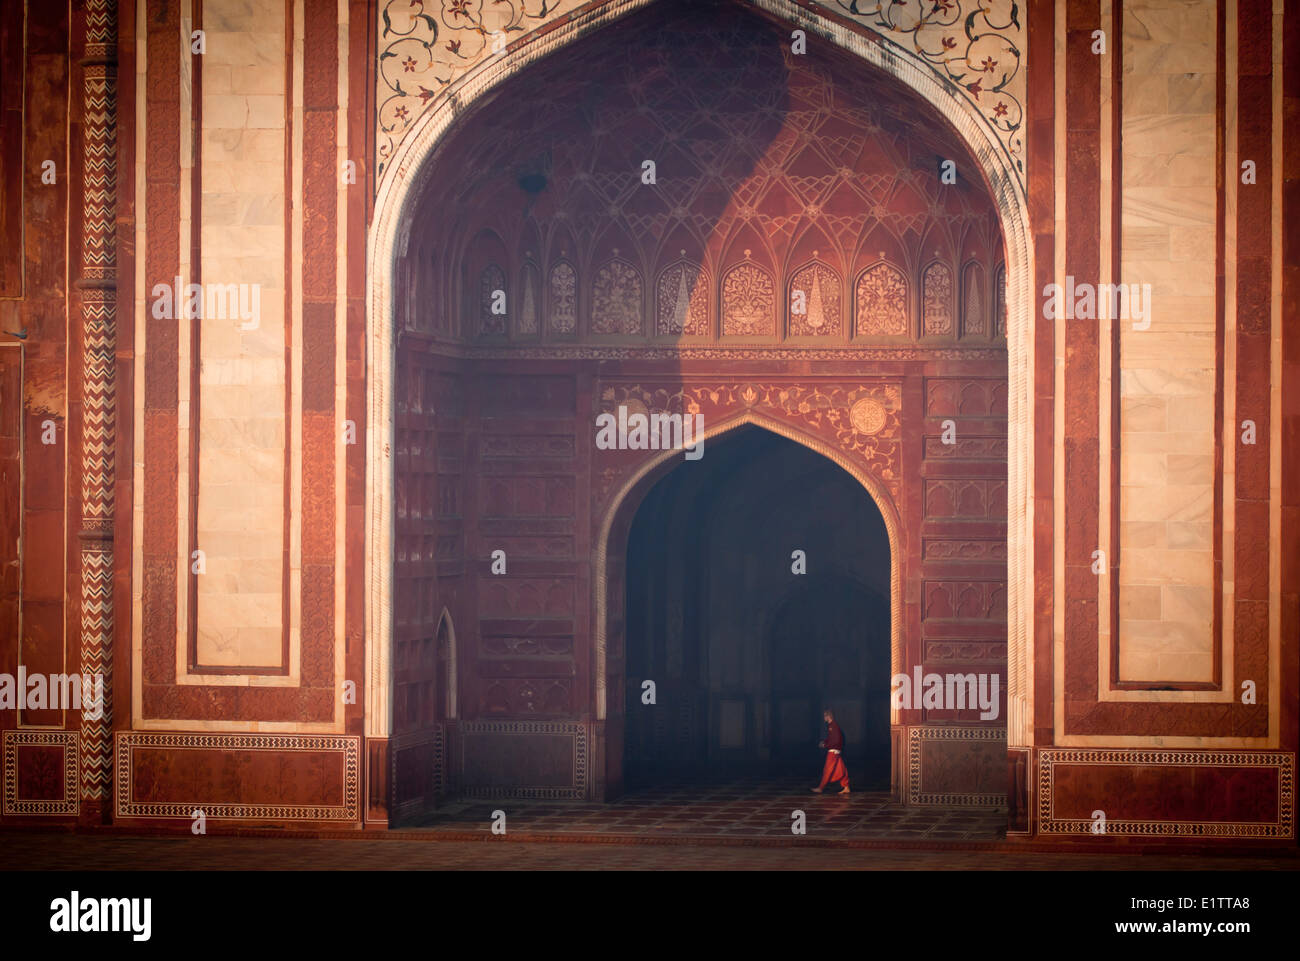 The Mosque to the left of the Taj Mahal shines at sunrise, Agra India - Stock Image